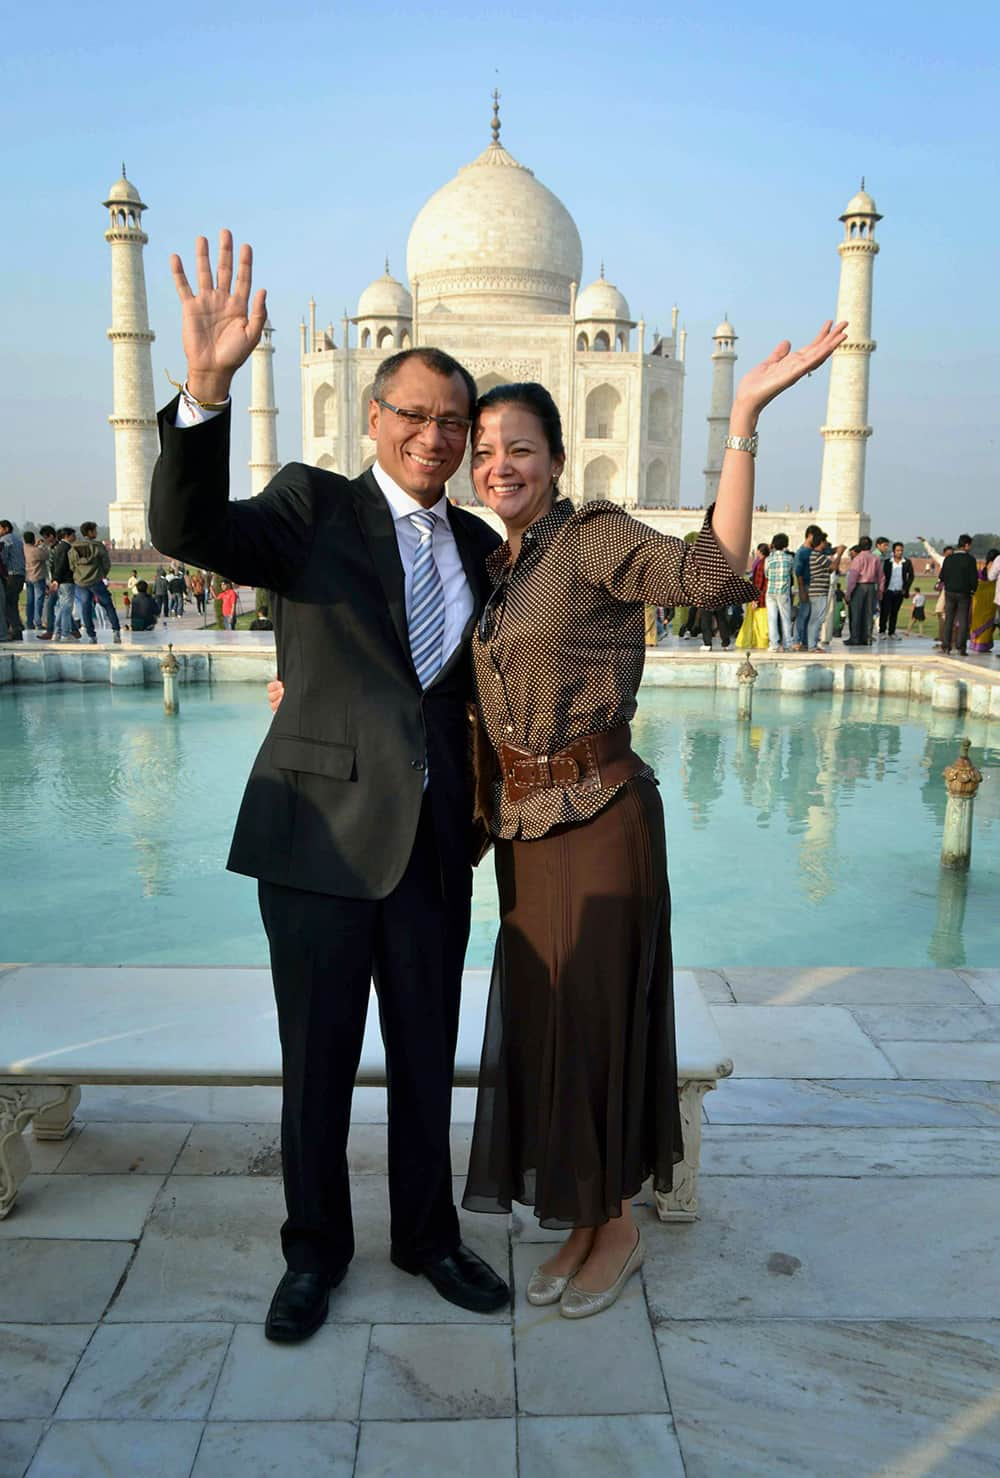 Ecuador's Vice President Jorge Glass and his wife pose for a photograph in front of the Taj Mahal in Agra.